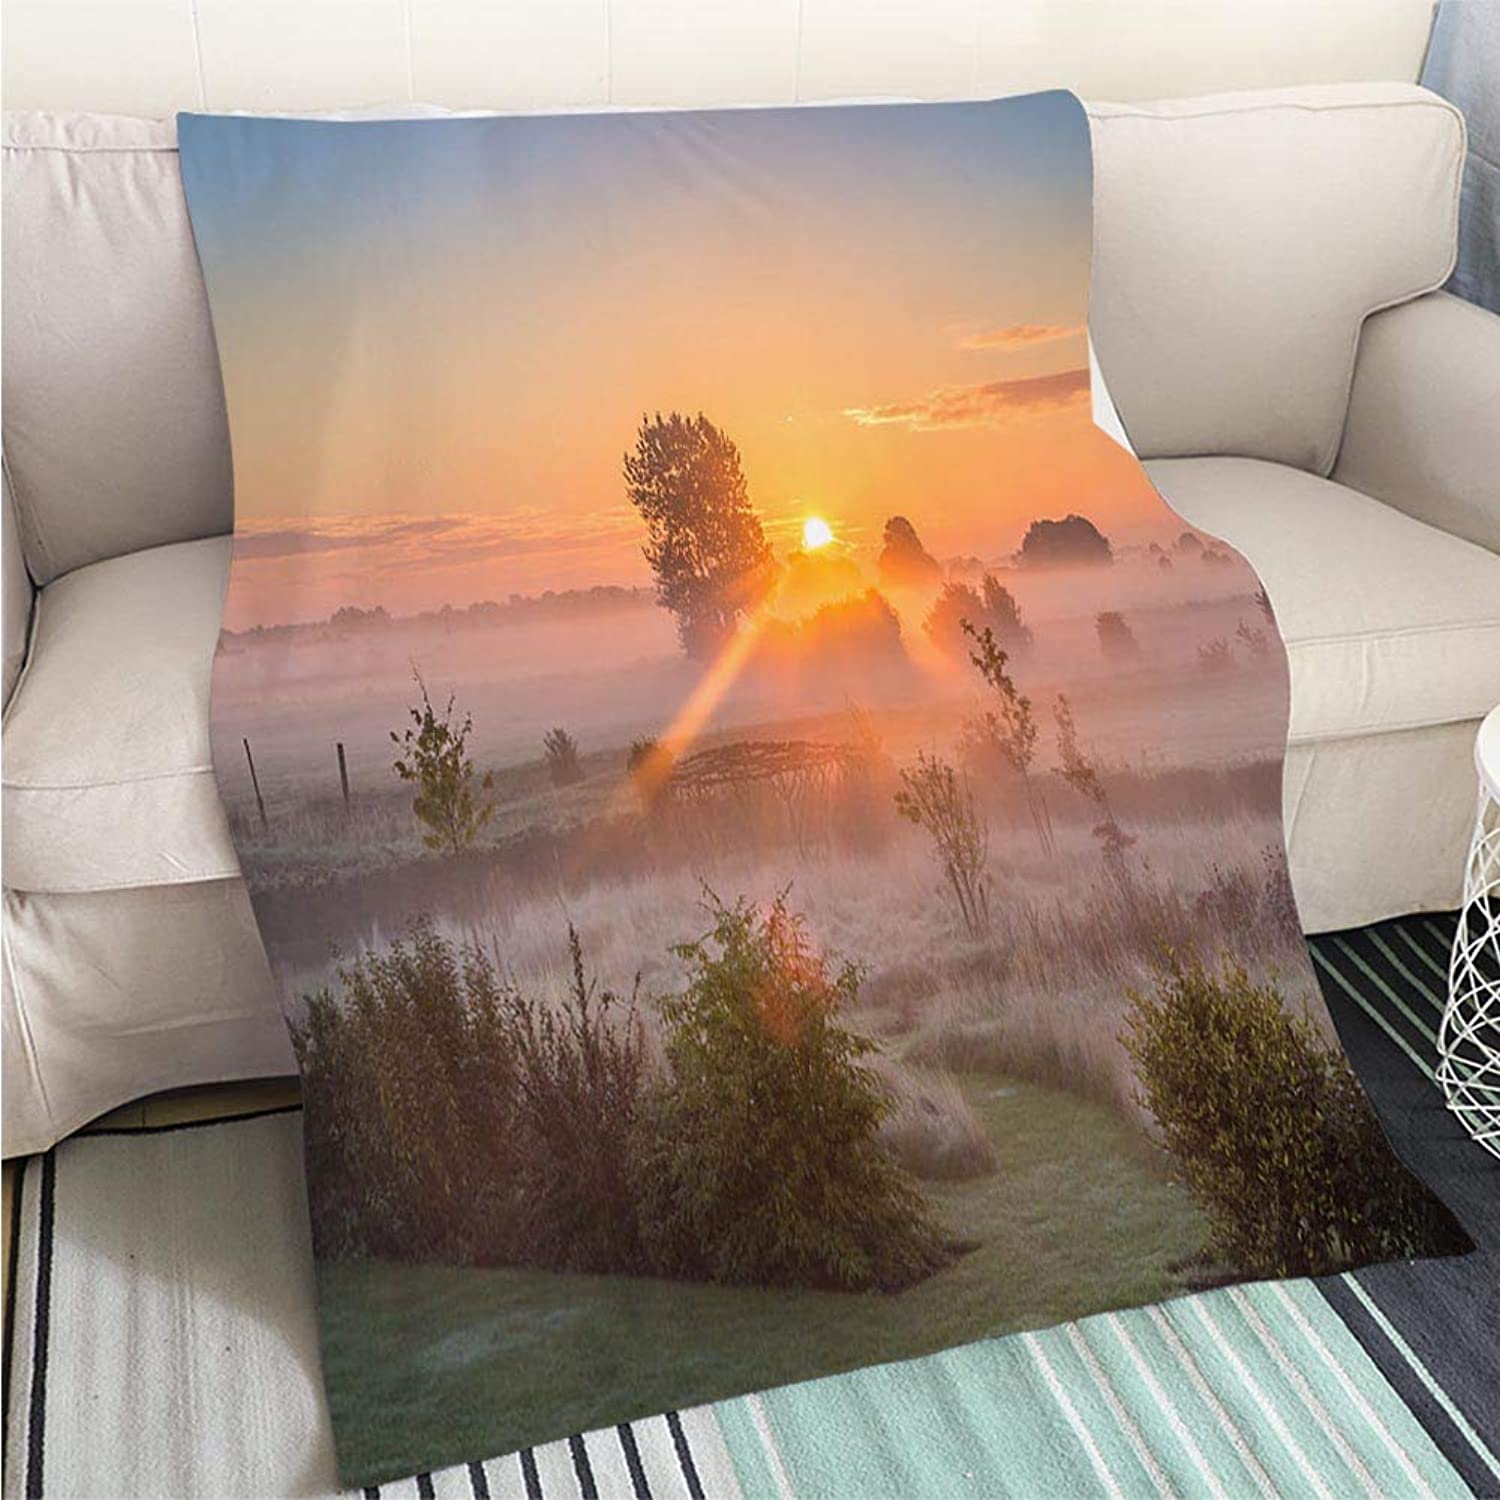 BEICICI Comforter Multicolor Bed or Couch Late Summer Sunrise Fun Design AllSeason Blanket Bed or Couch